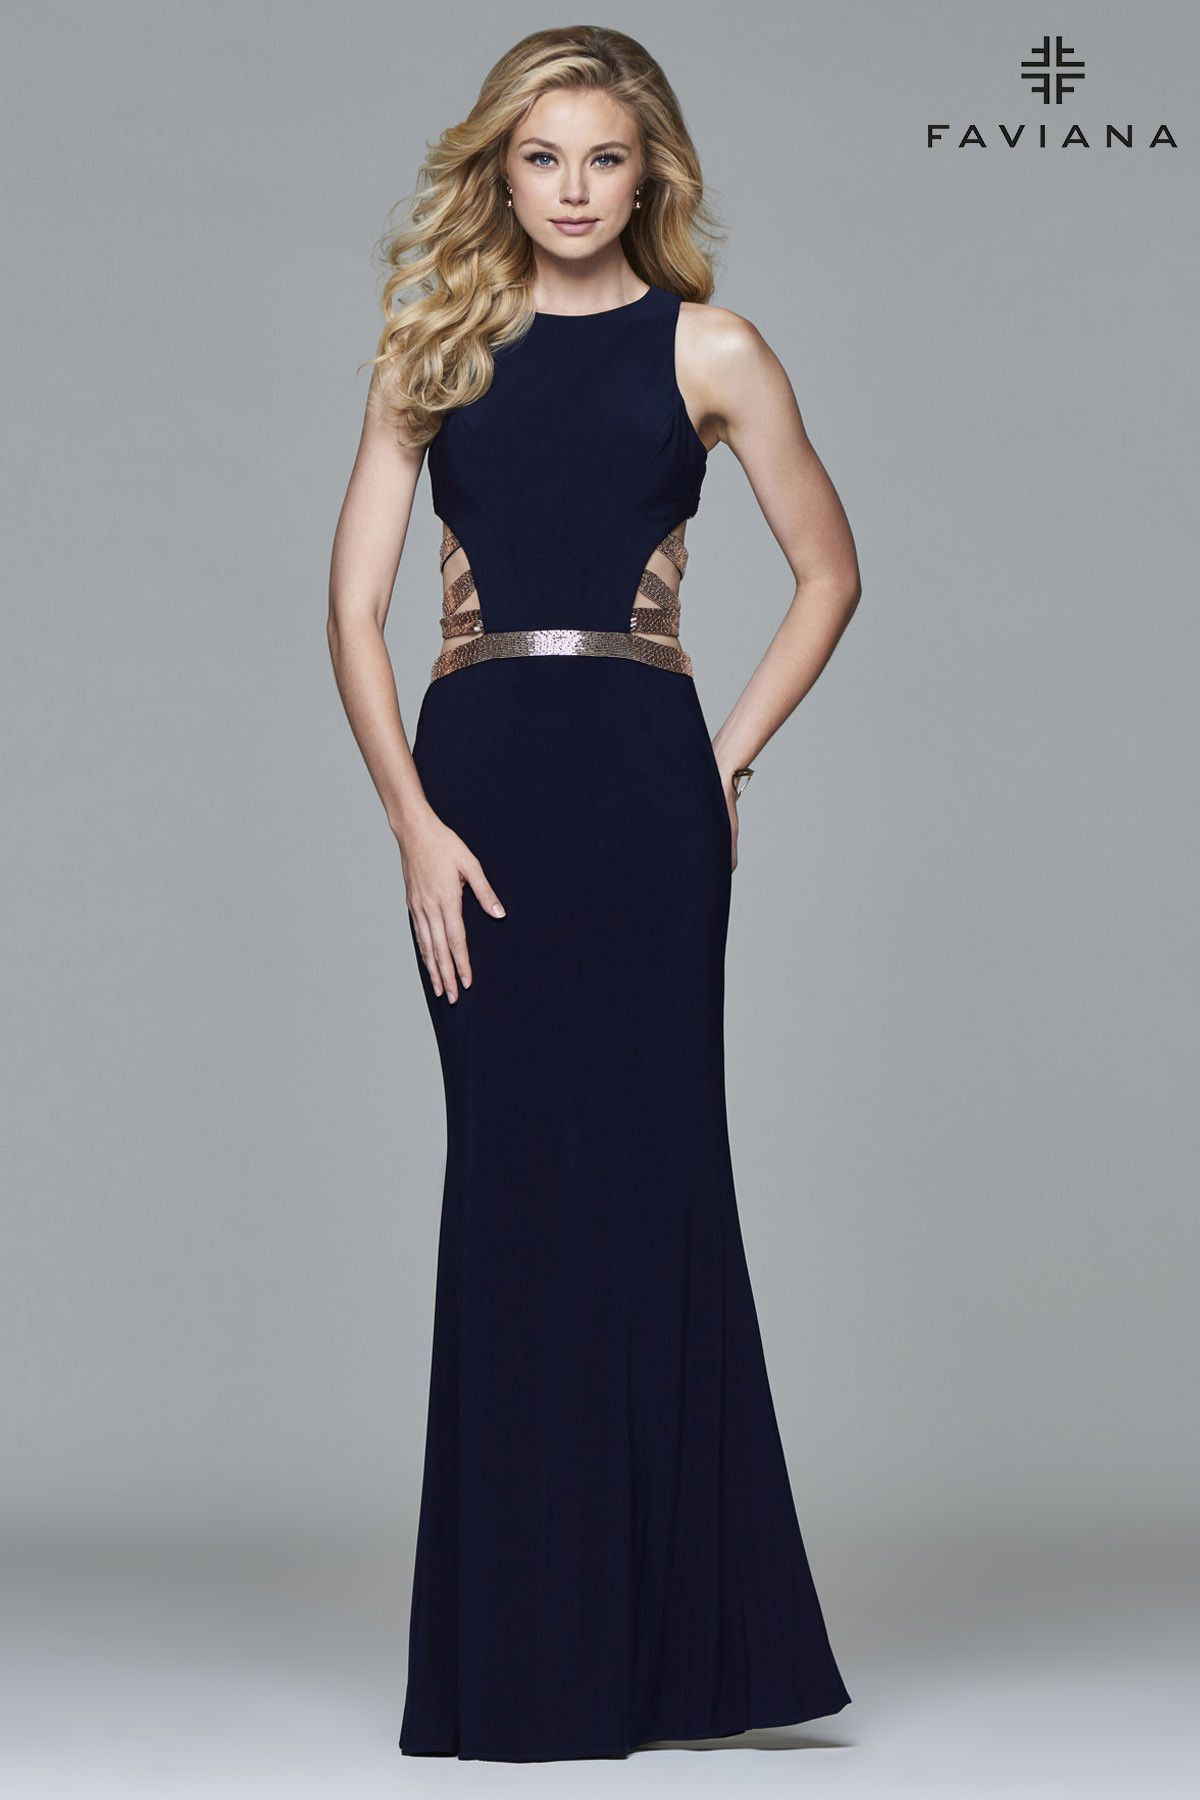 fcf73f4b36 It features a halter neckline and a fit and flare skirt. This dress is  perfect for a slender or hourglass body shape  the ...